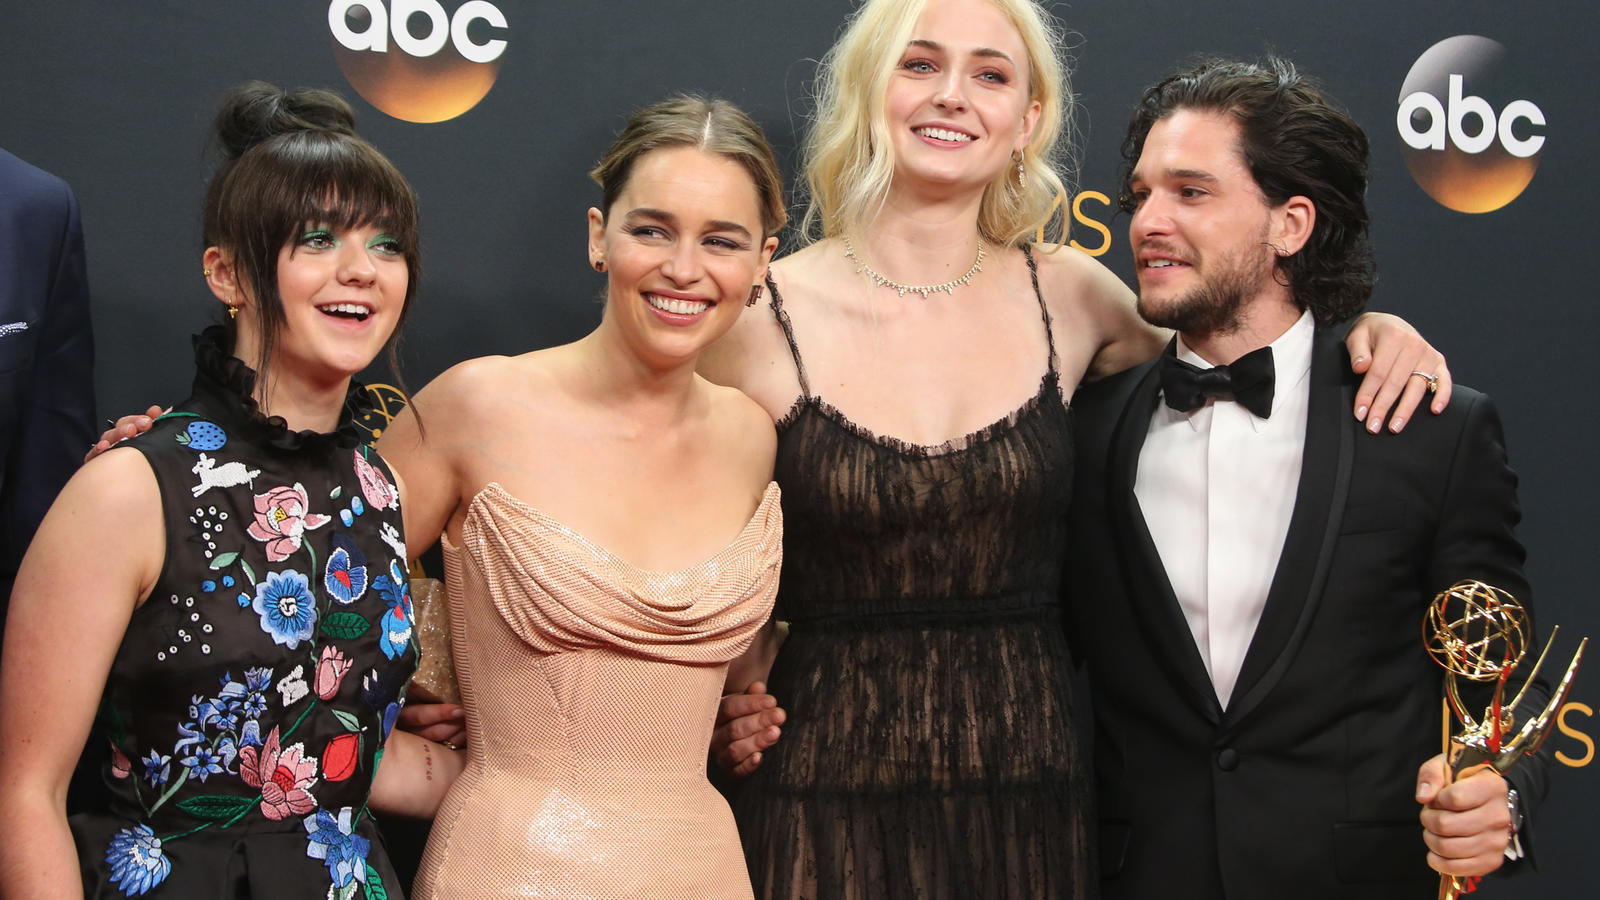 68th Annual Primetime Emmy Awards - Press Room at the Microsoft TheatreFeaturing: Maisie Williams, Emilia Clarke, Sophie Turner and Kit HaringtonWhere: Los Angeles, California, United StatesWhen: 19 Sep 2016Credit: FayesVision/WENN.com